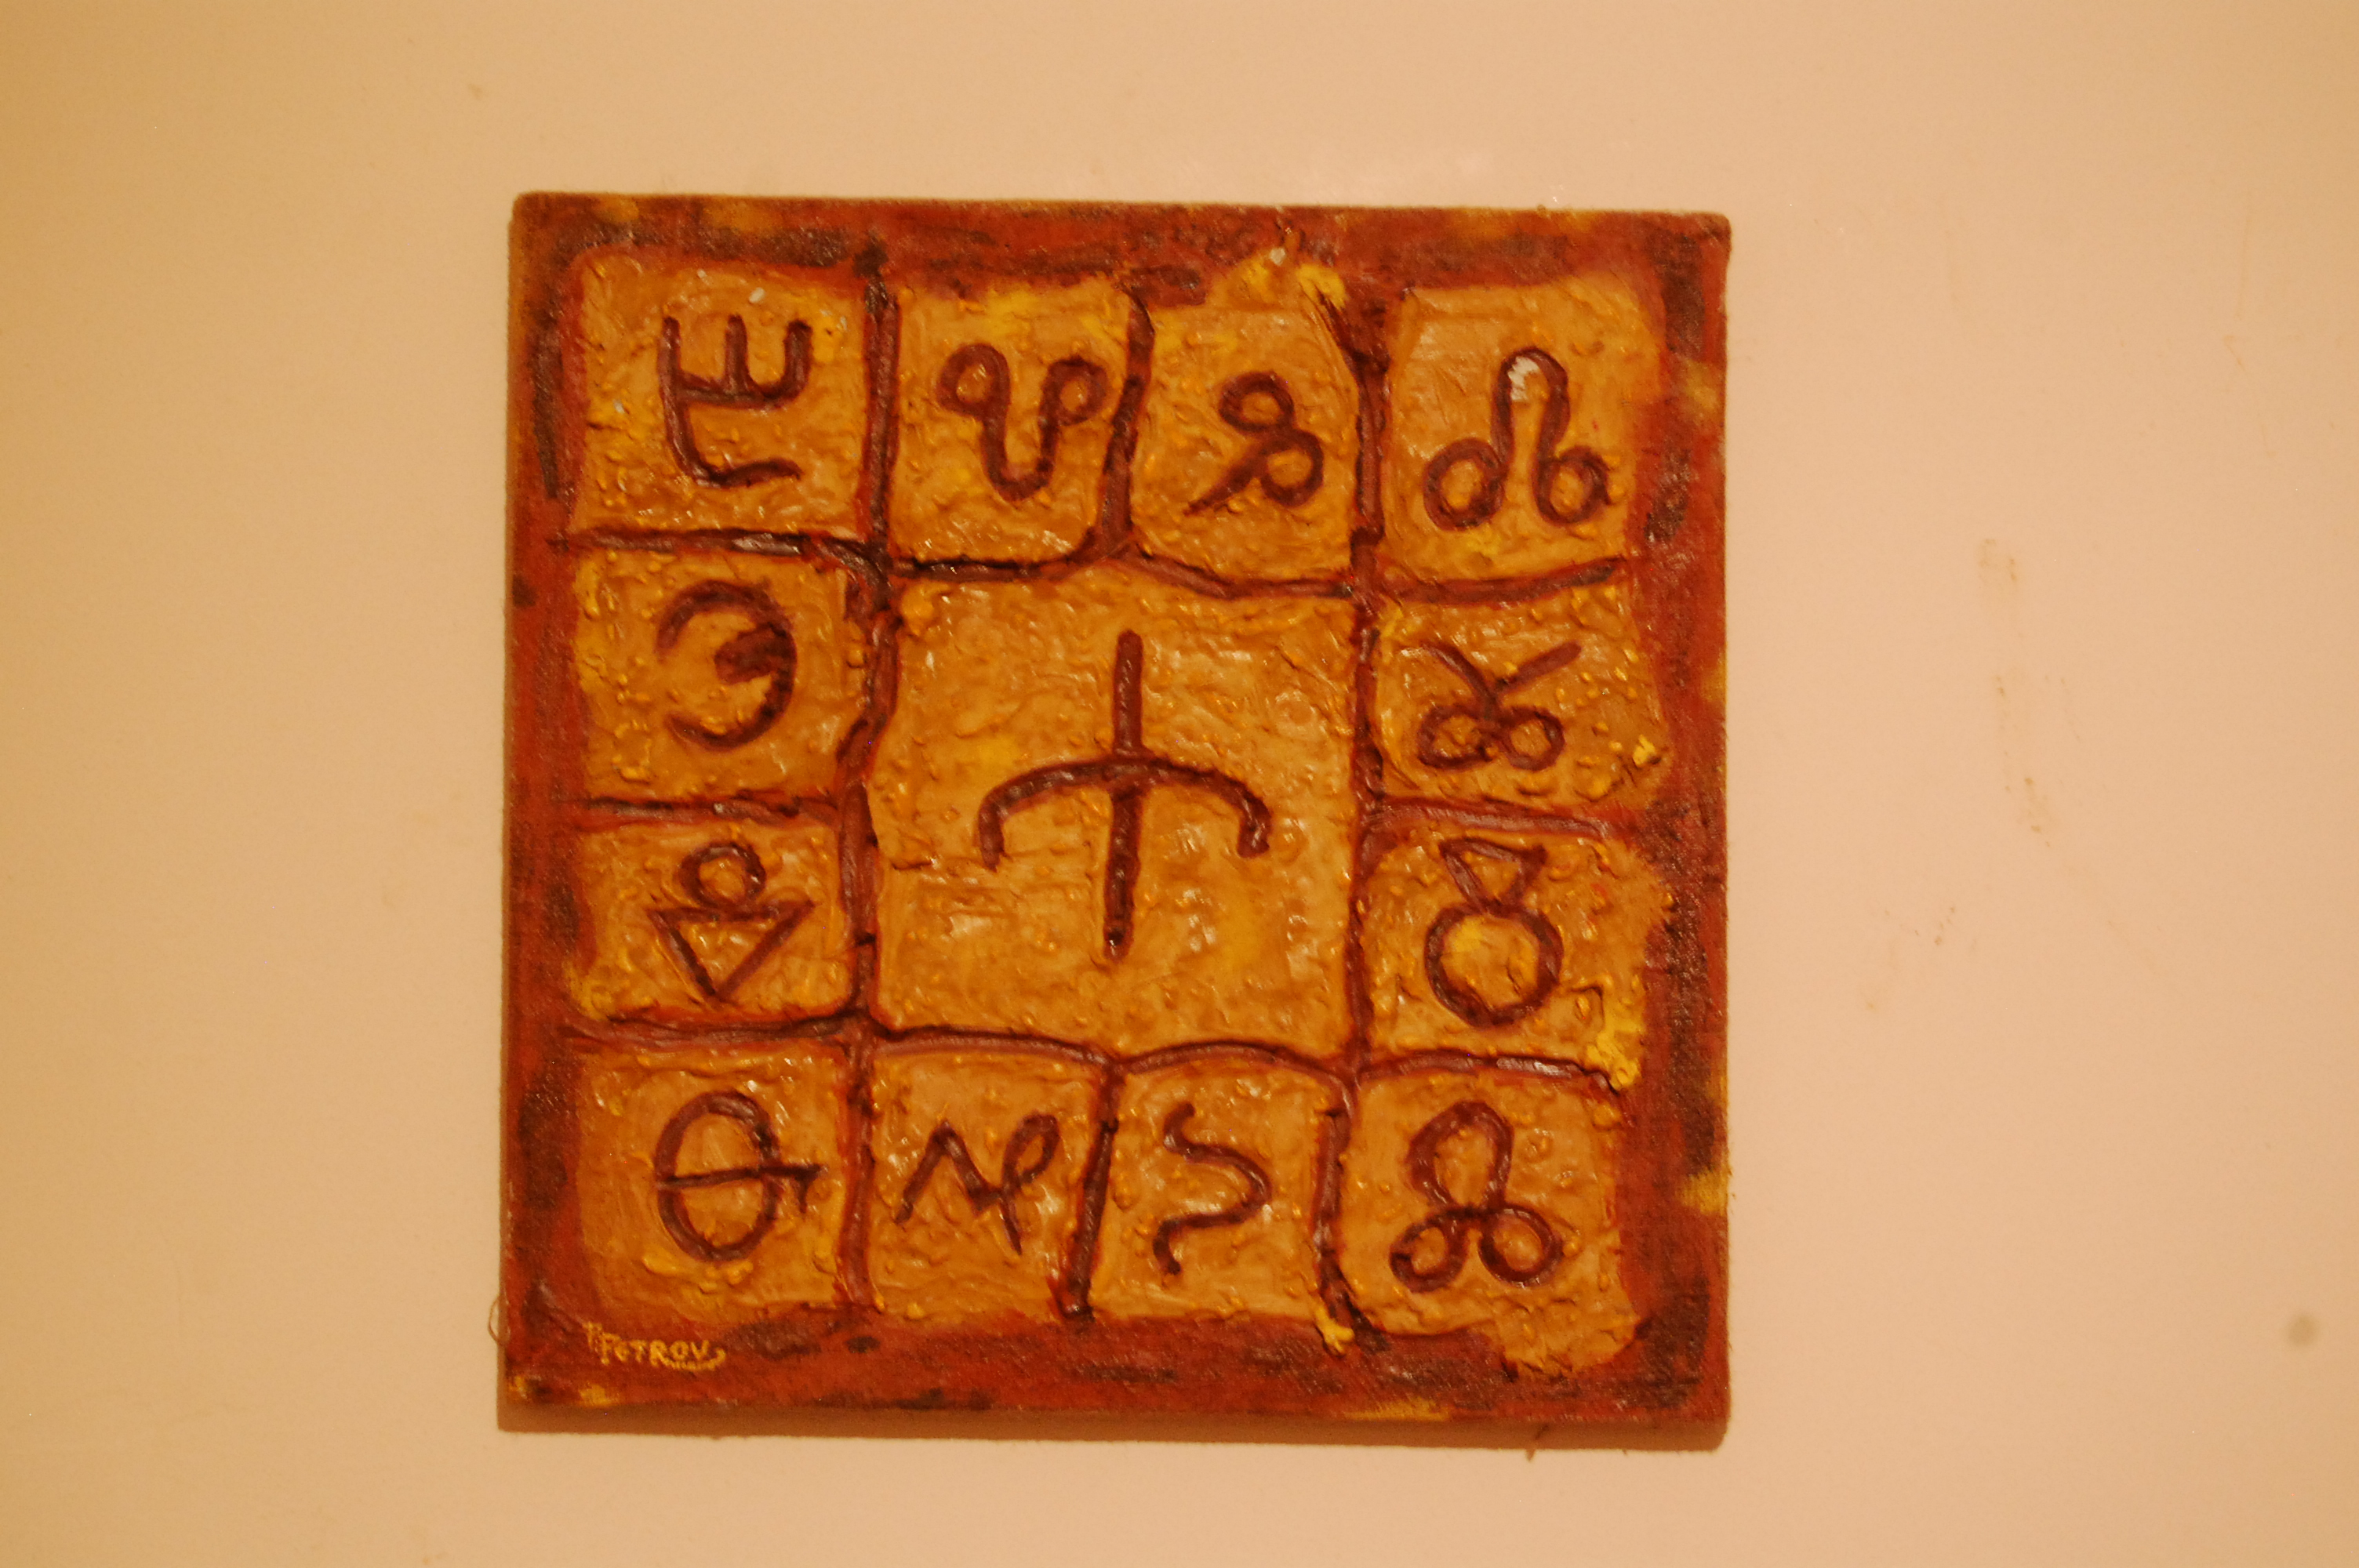 A RANDOM CHOSEN LETTERS FROM THE GLAGOLITIC ALPHABET - DSC_0211